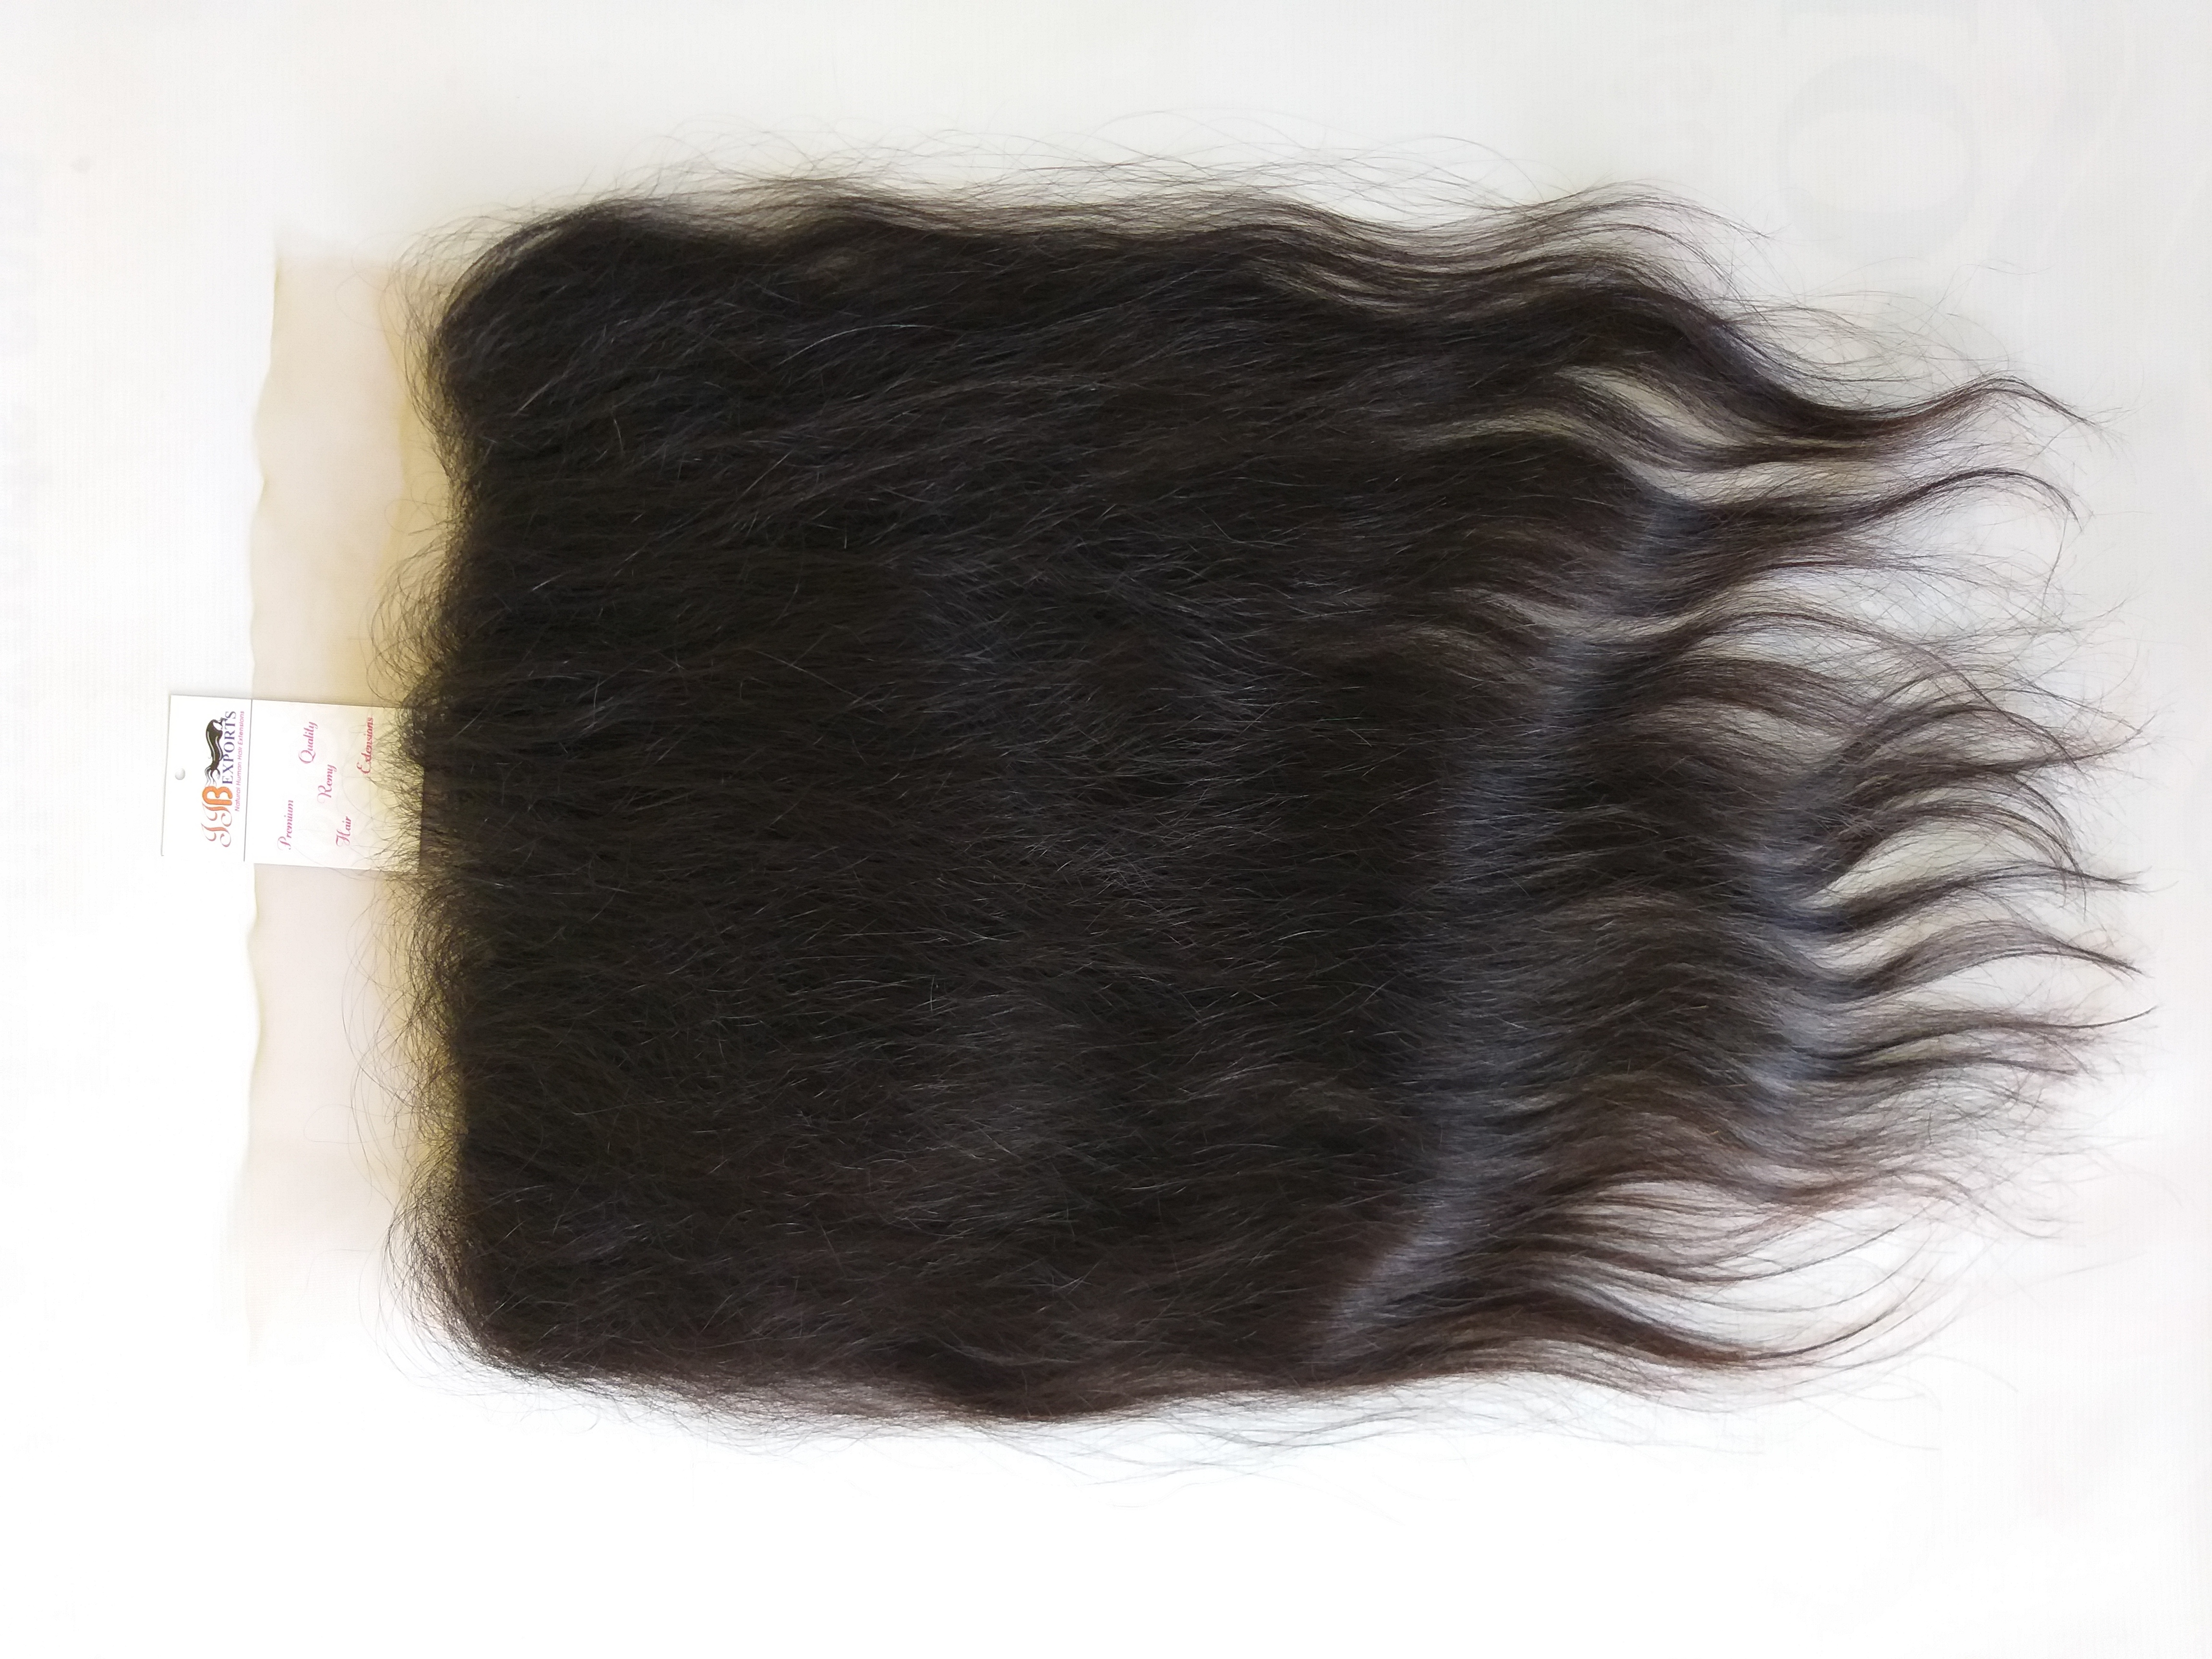 High Quality Cuticle Aligned Thin Transparent Lace Frontal/Closure,4*4 13*5 Virgin Transparent Swiss Lace Frontal